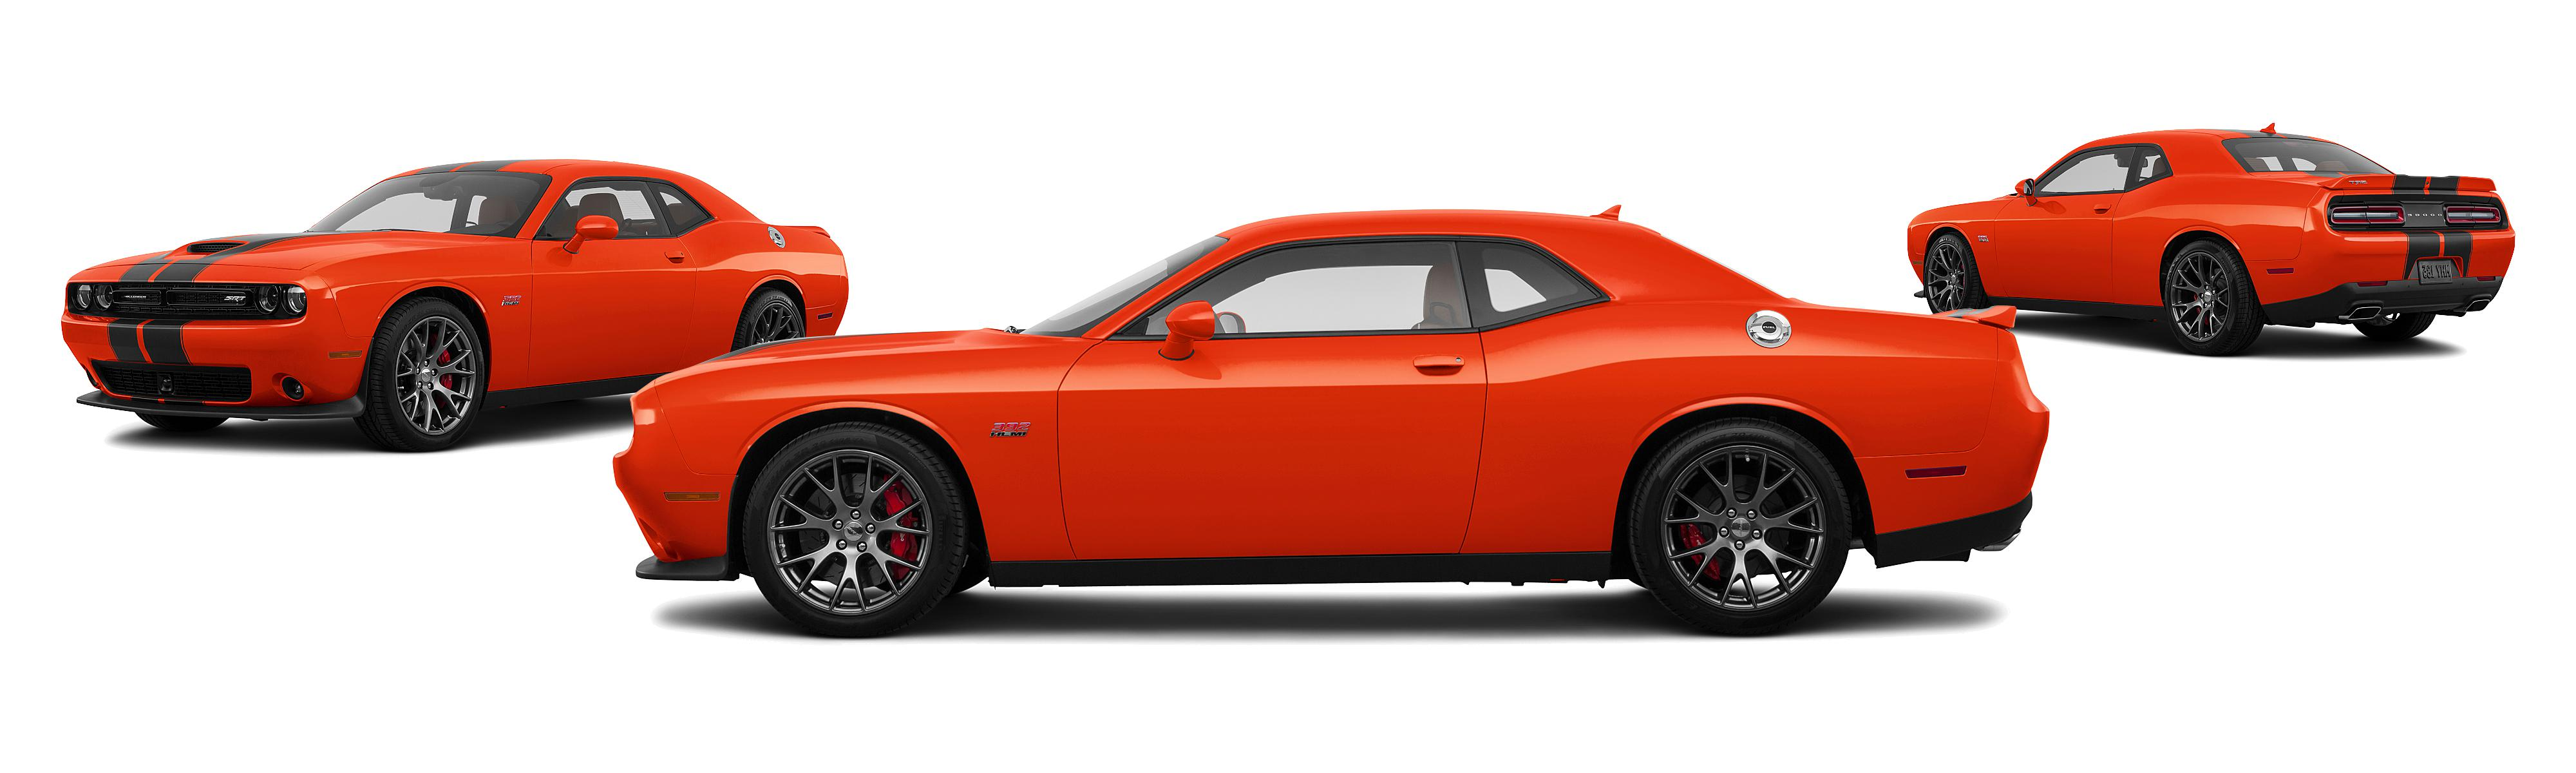 2016 Dodge Challenger SRT 392 2dr Coupe Research GrooveCar